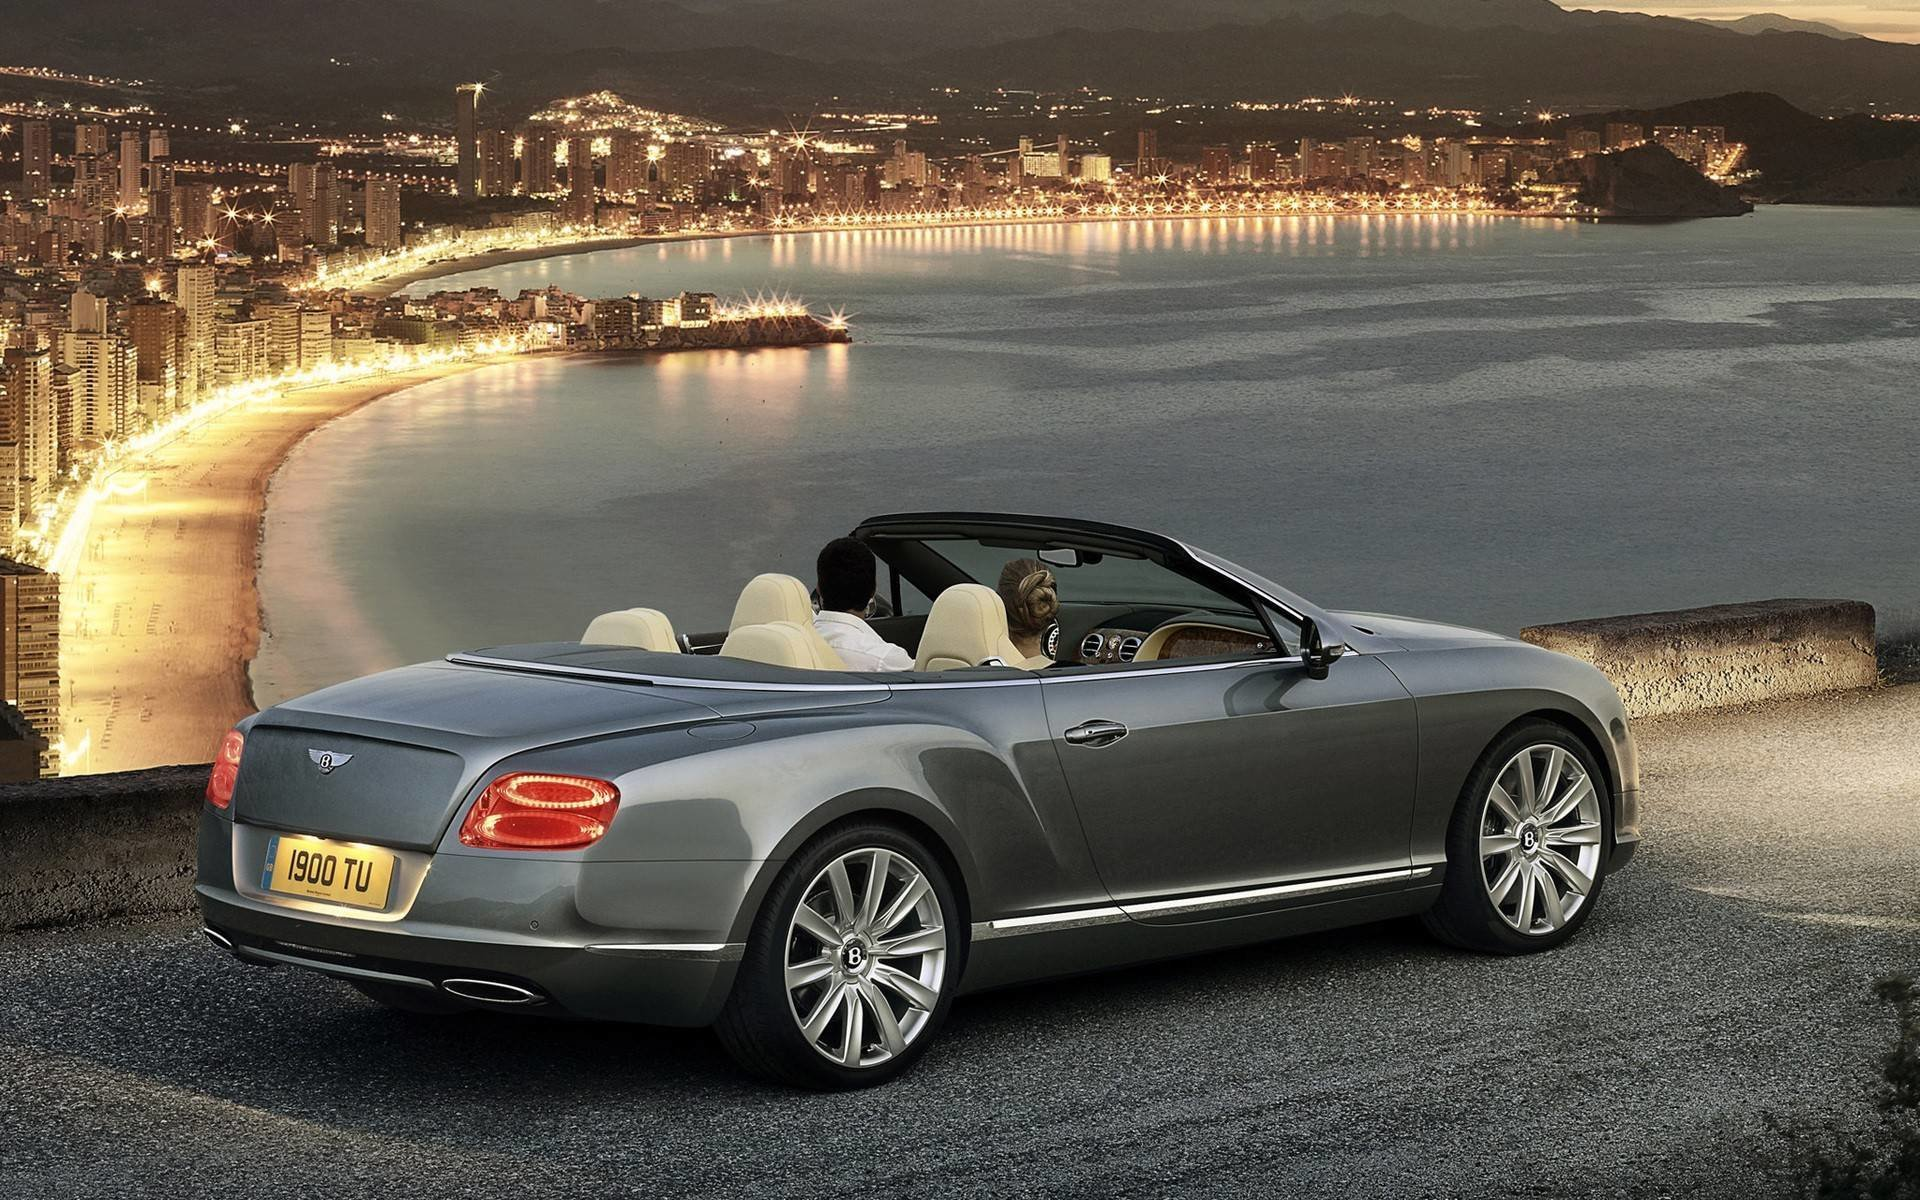 Latest Bentley Cars Pictures 41 High Resolution Car Wallpaper Free Download